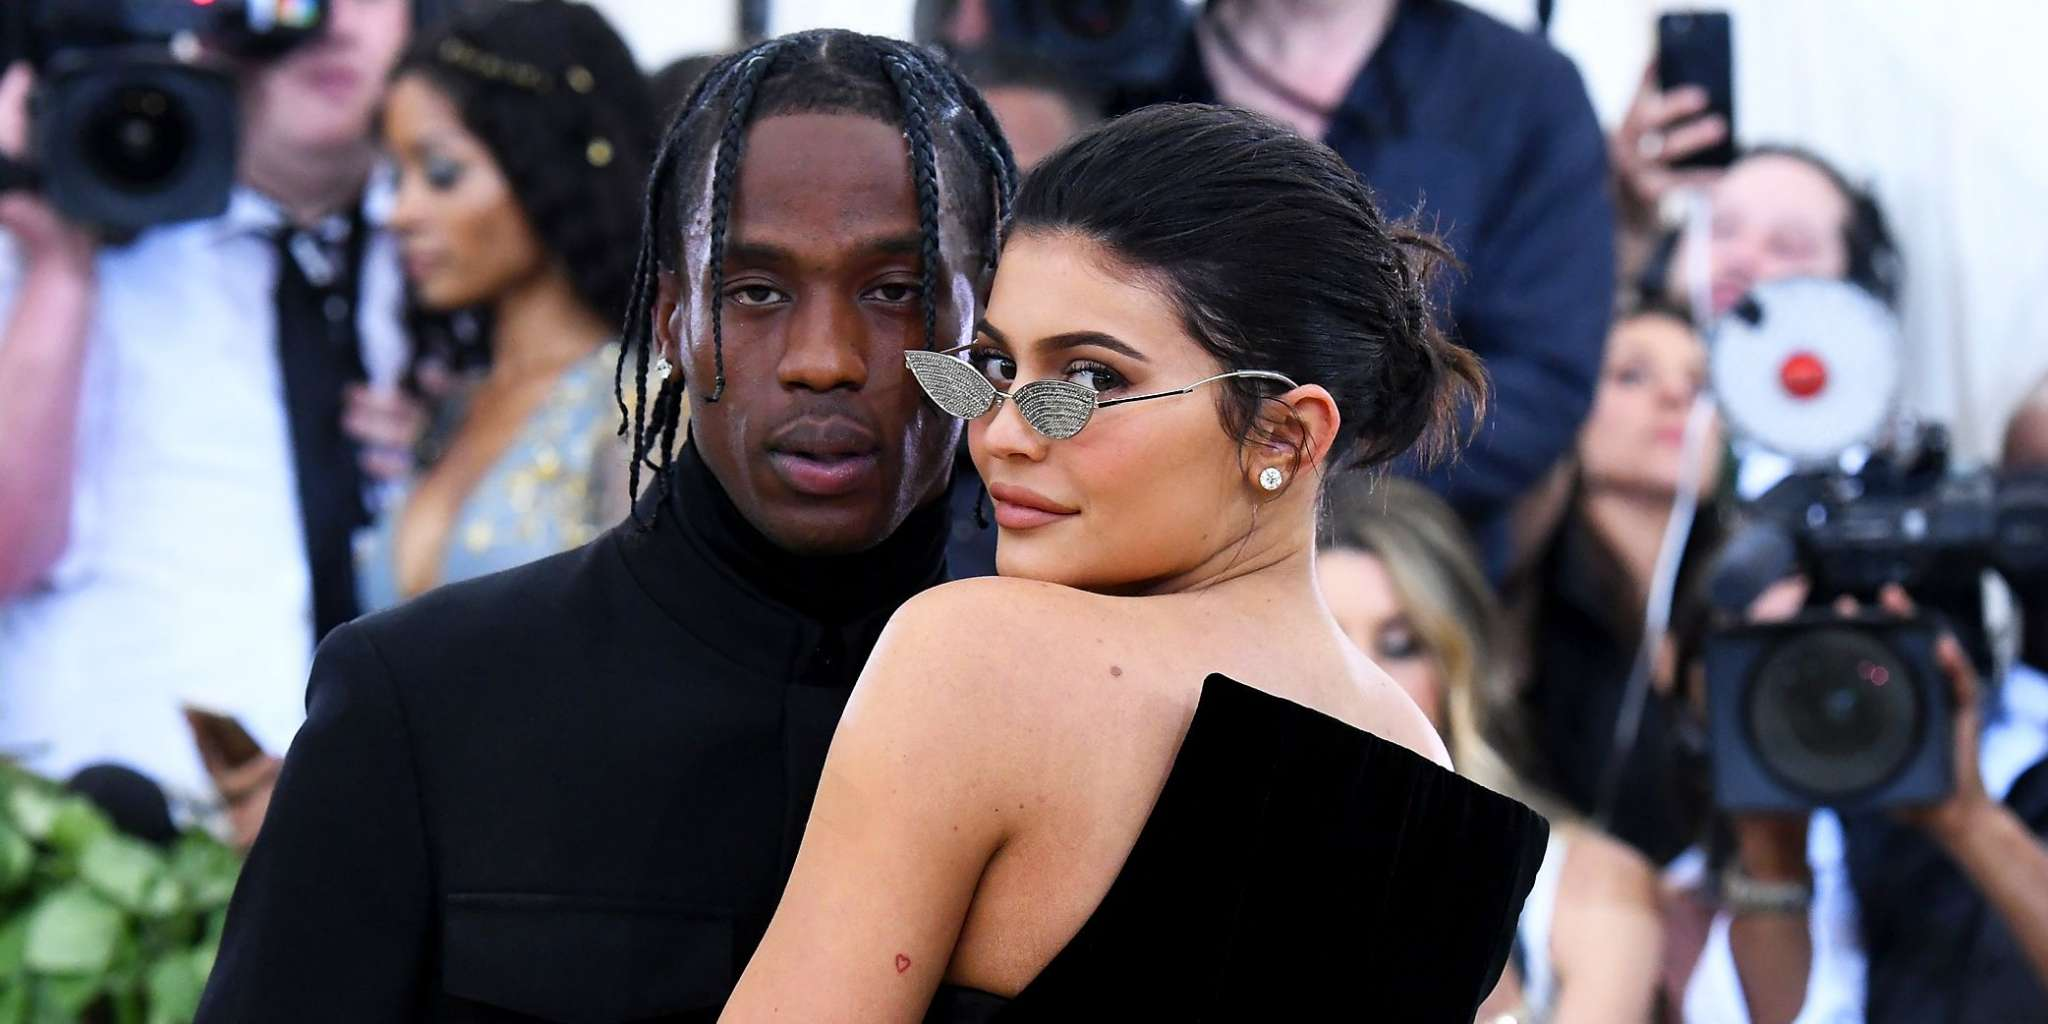 kuwk-kylie-jenner-gives-travis-scott-a-tattoo-check-out-the-vid